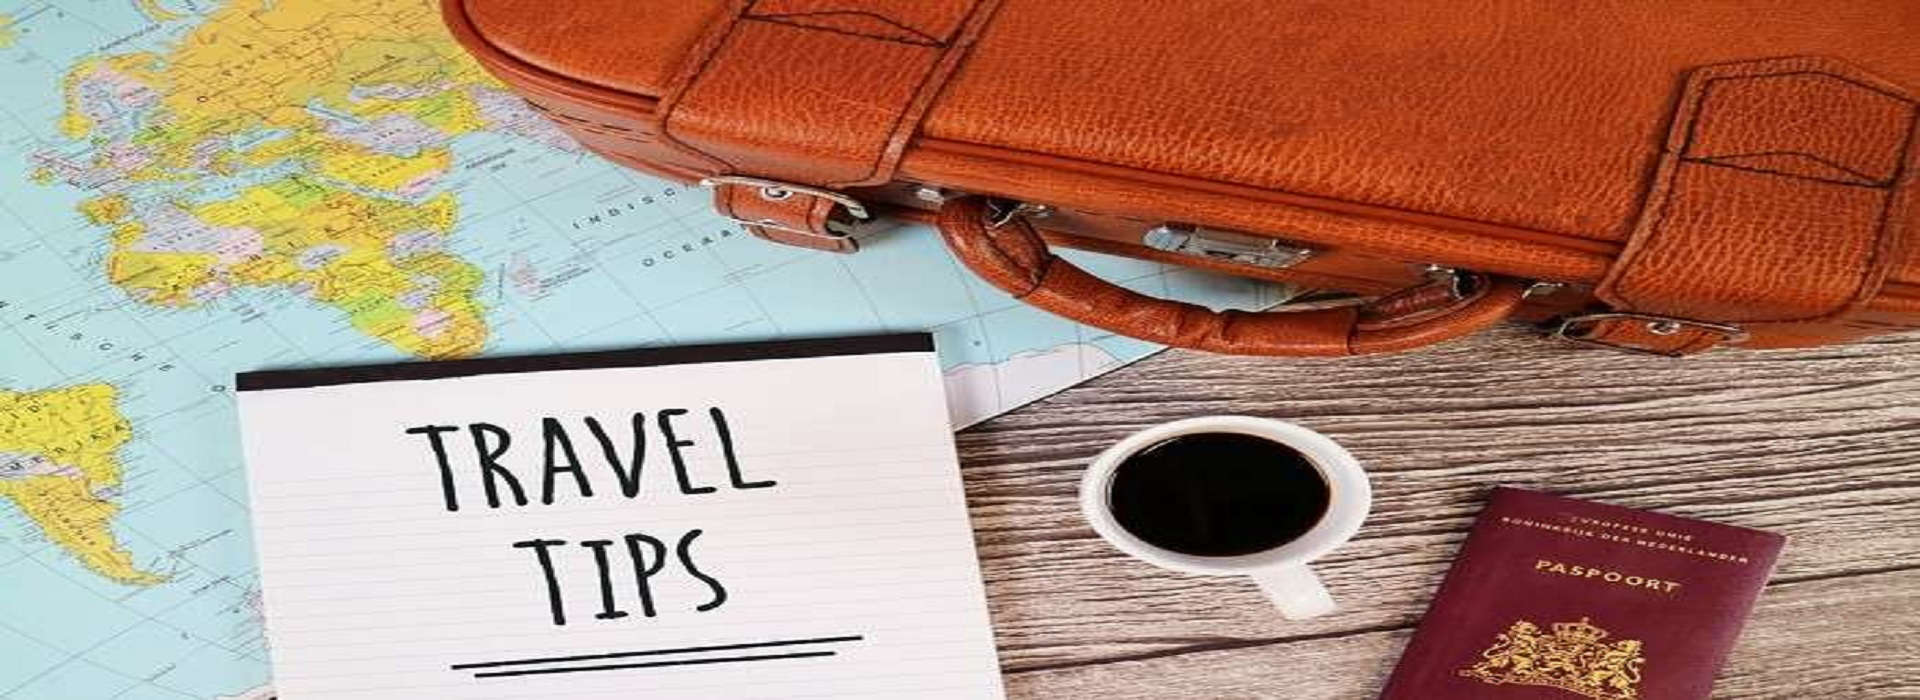 Travel tips while doing trip